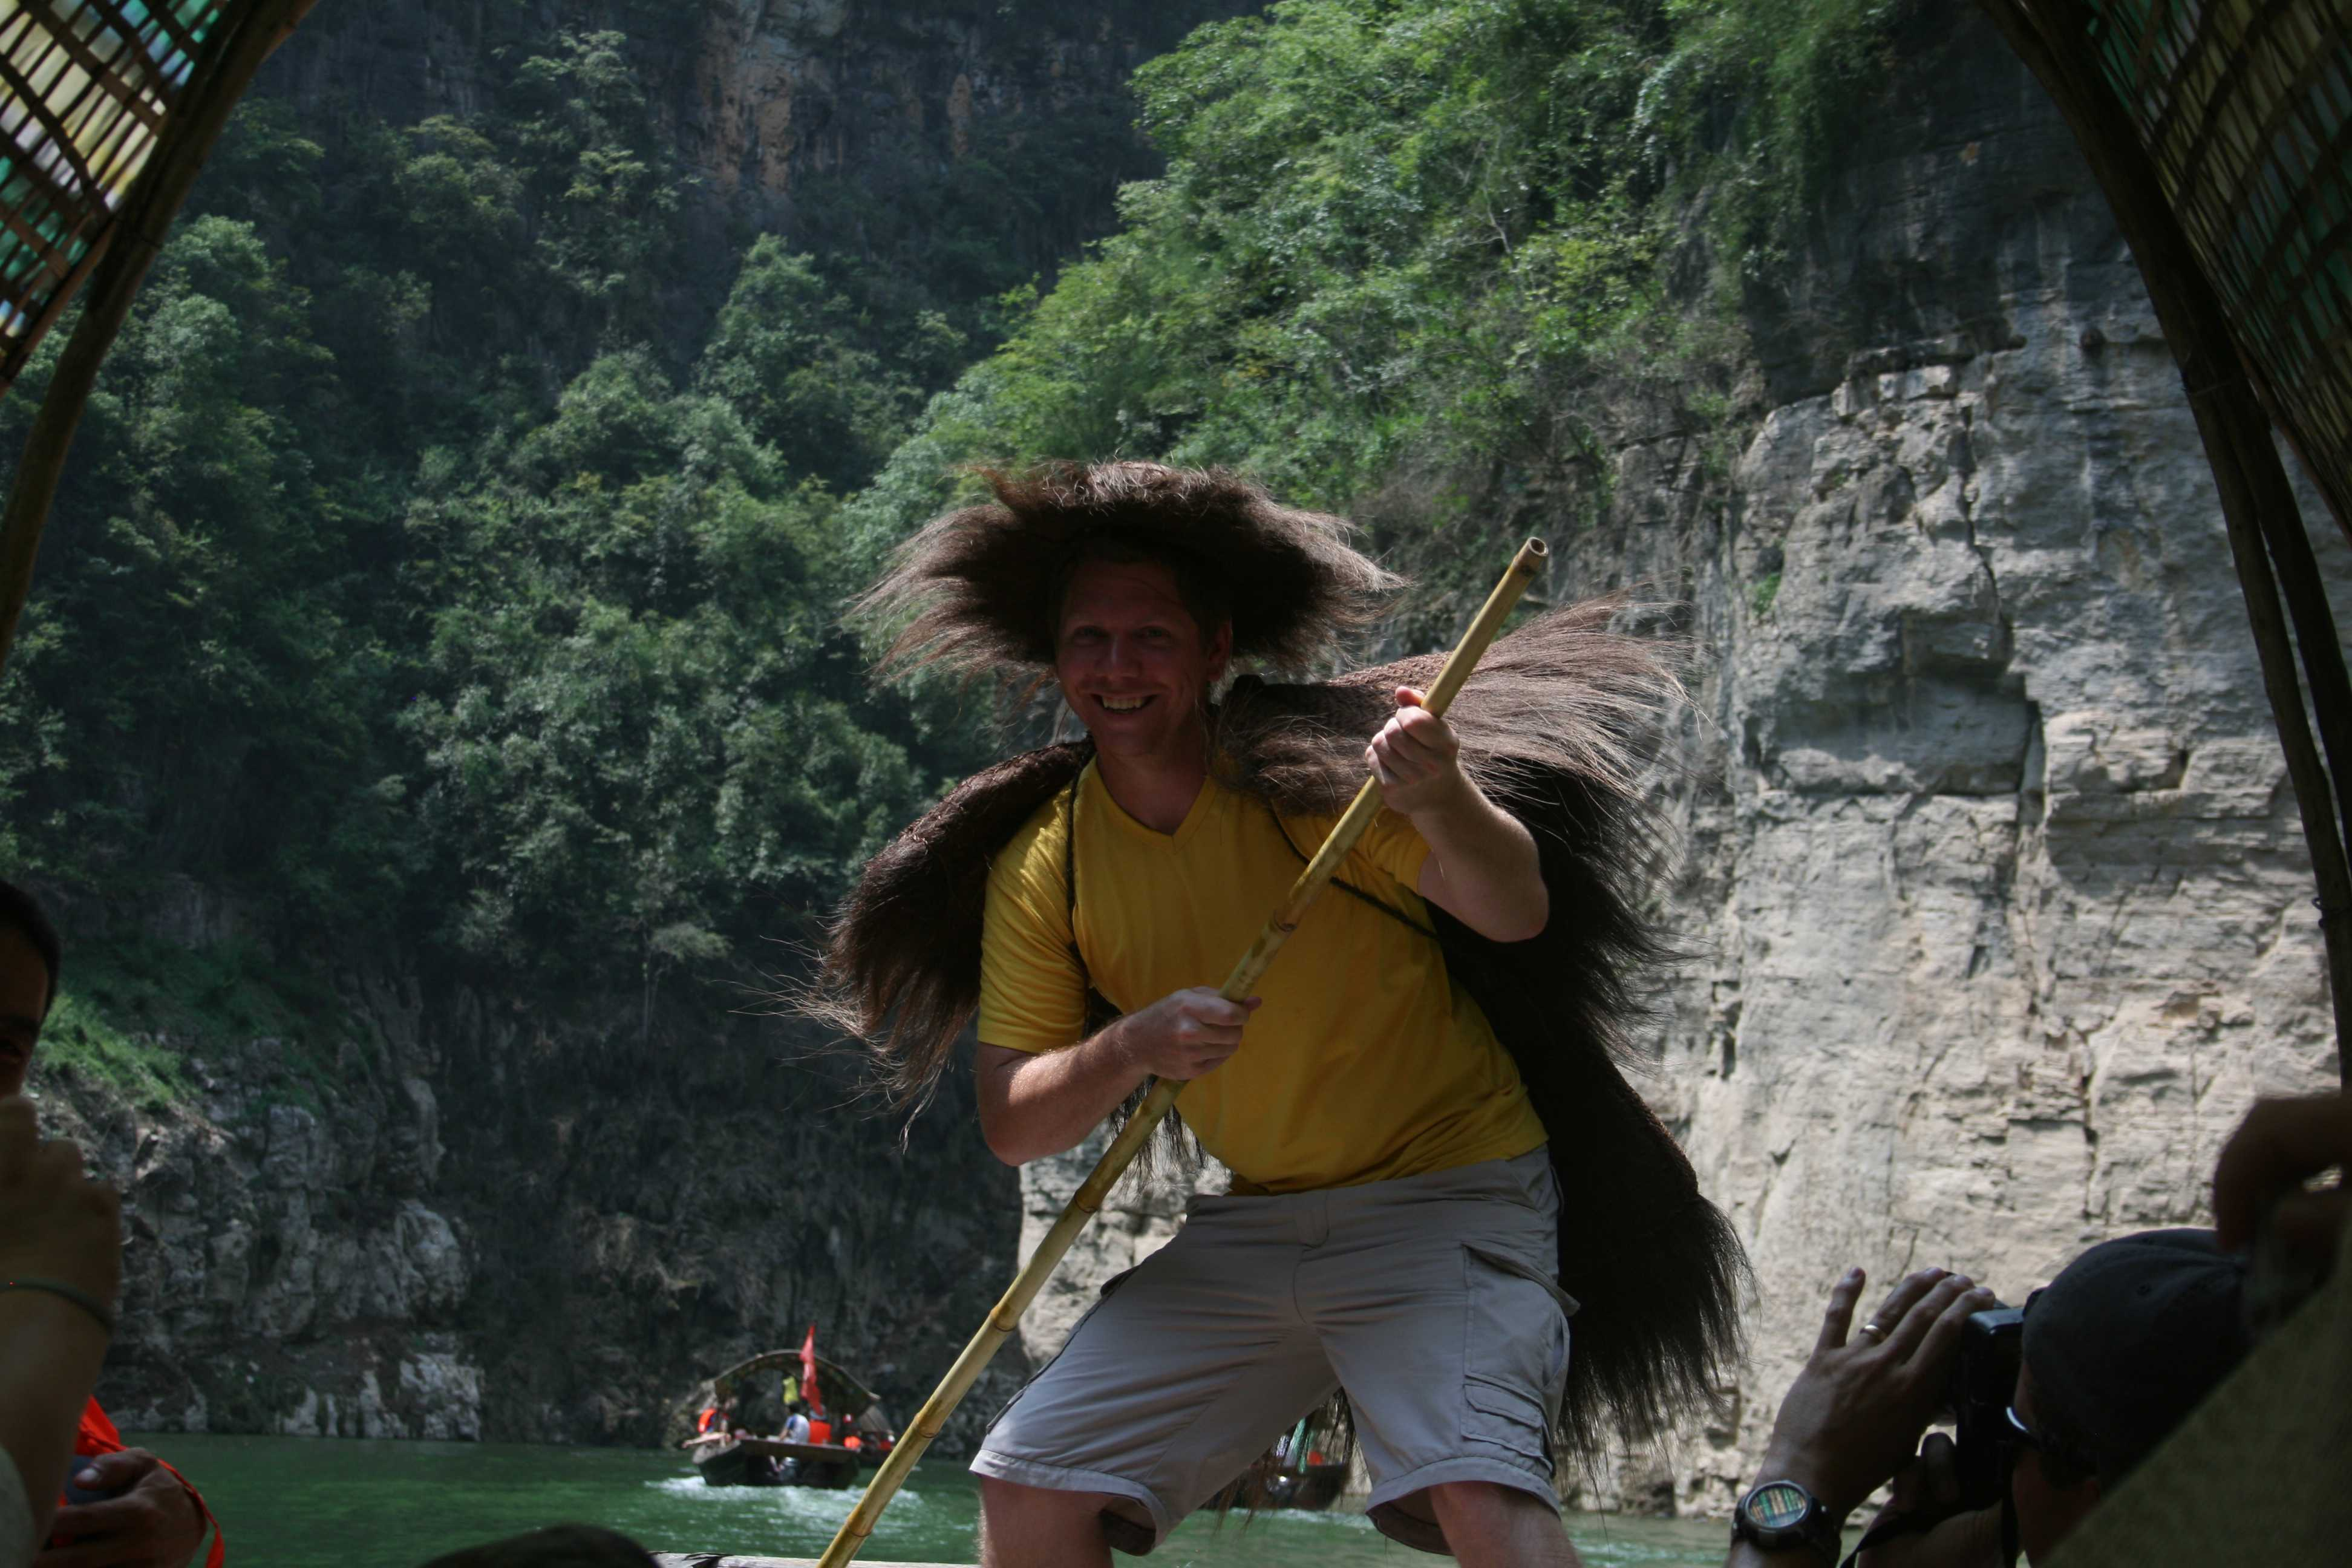 Ware poses for the camera while dressed in fur-like drab on the Yangtze River in China.